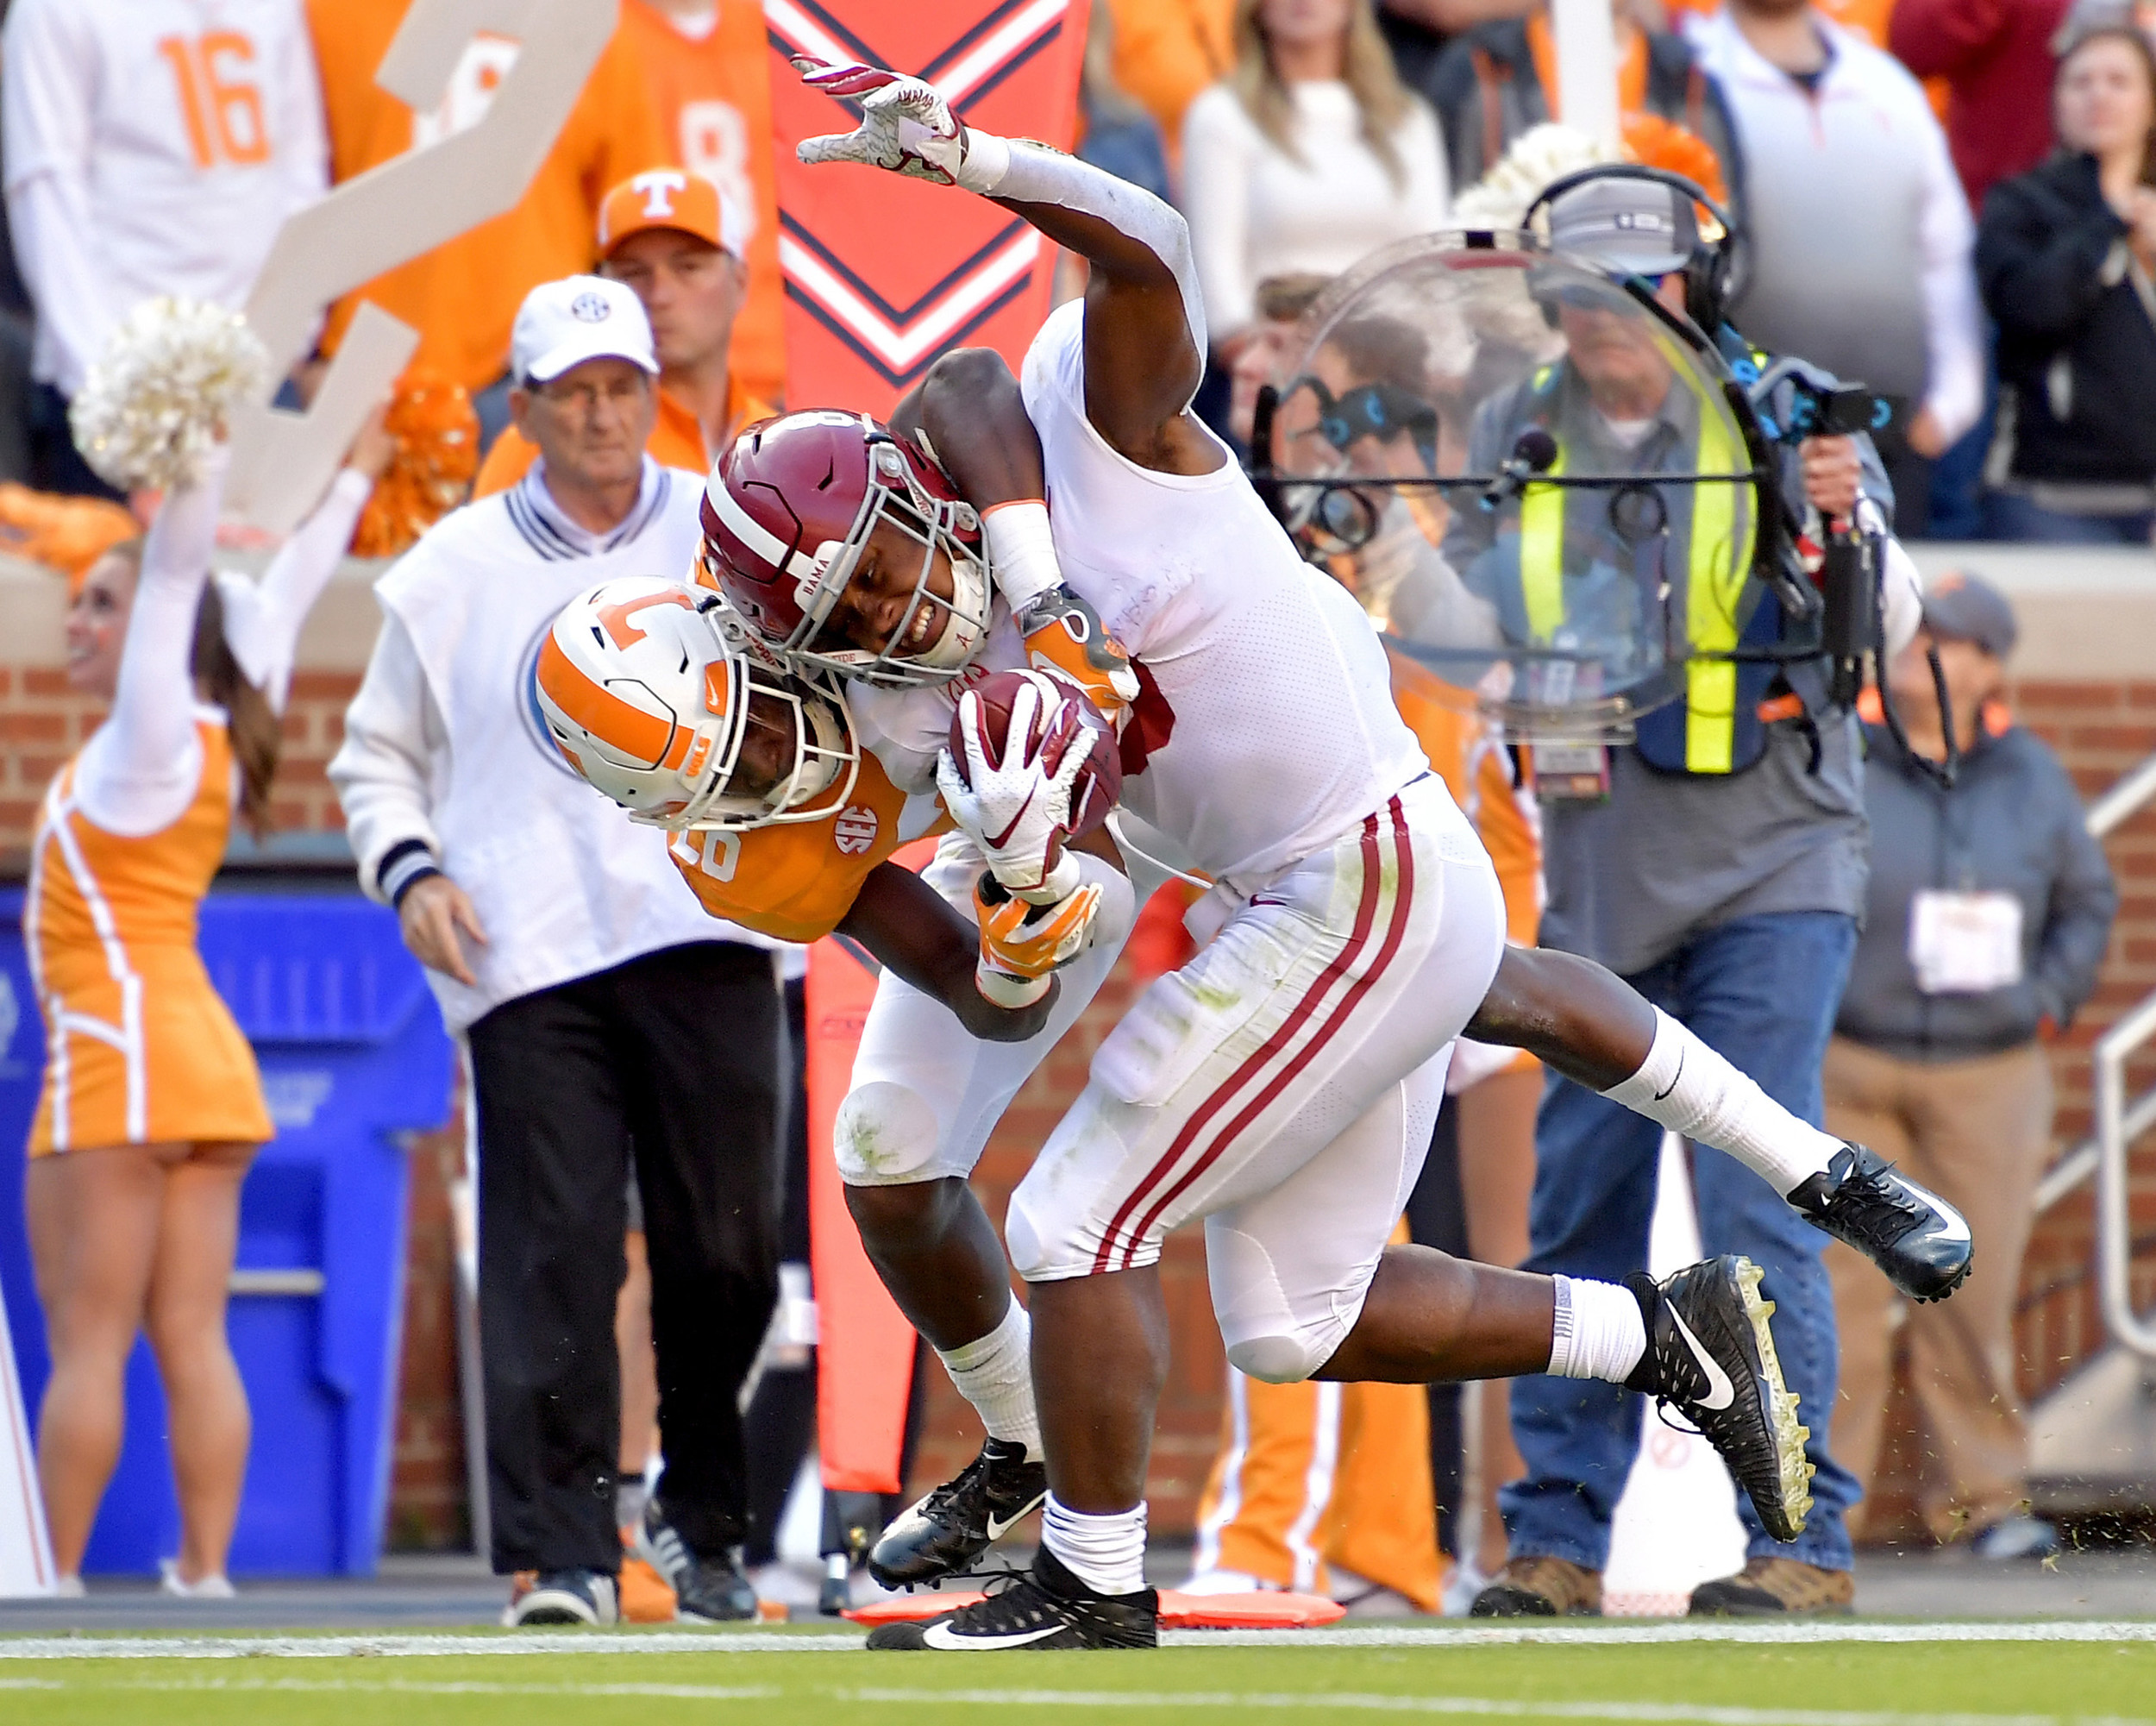 From the first half of the Alabama at Tennessee NCAA football game on Saturday, Oct. 20, 2018, at Neyland Stadium in Knoxville. Tenn. Alabama wins 58-21. (Photo by Lee Walls)